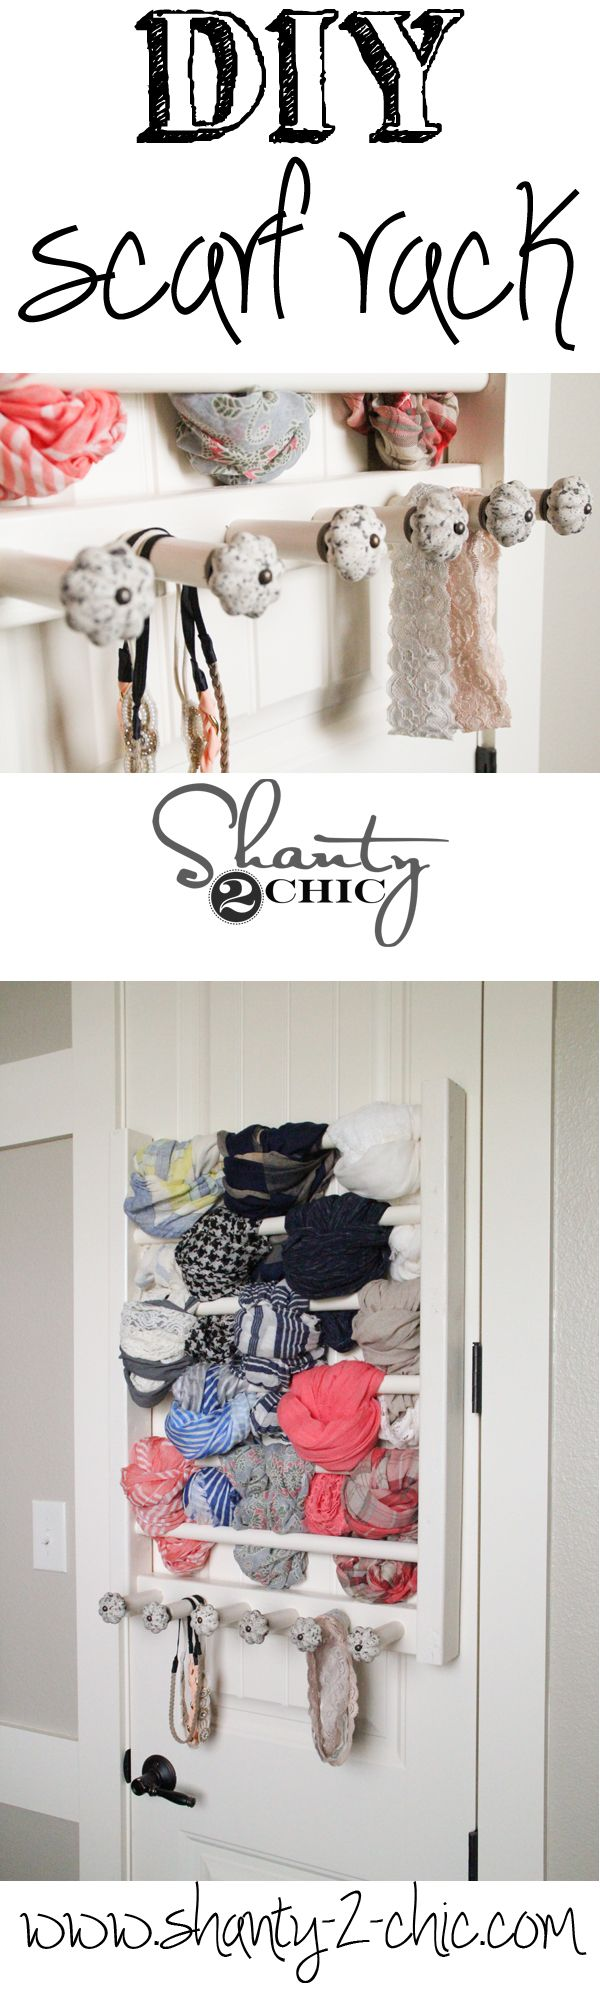 Best 25+ Scarf rack ideas on Pinterest